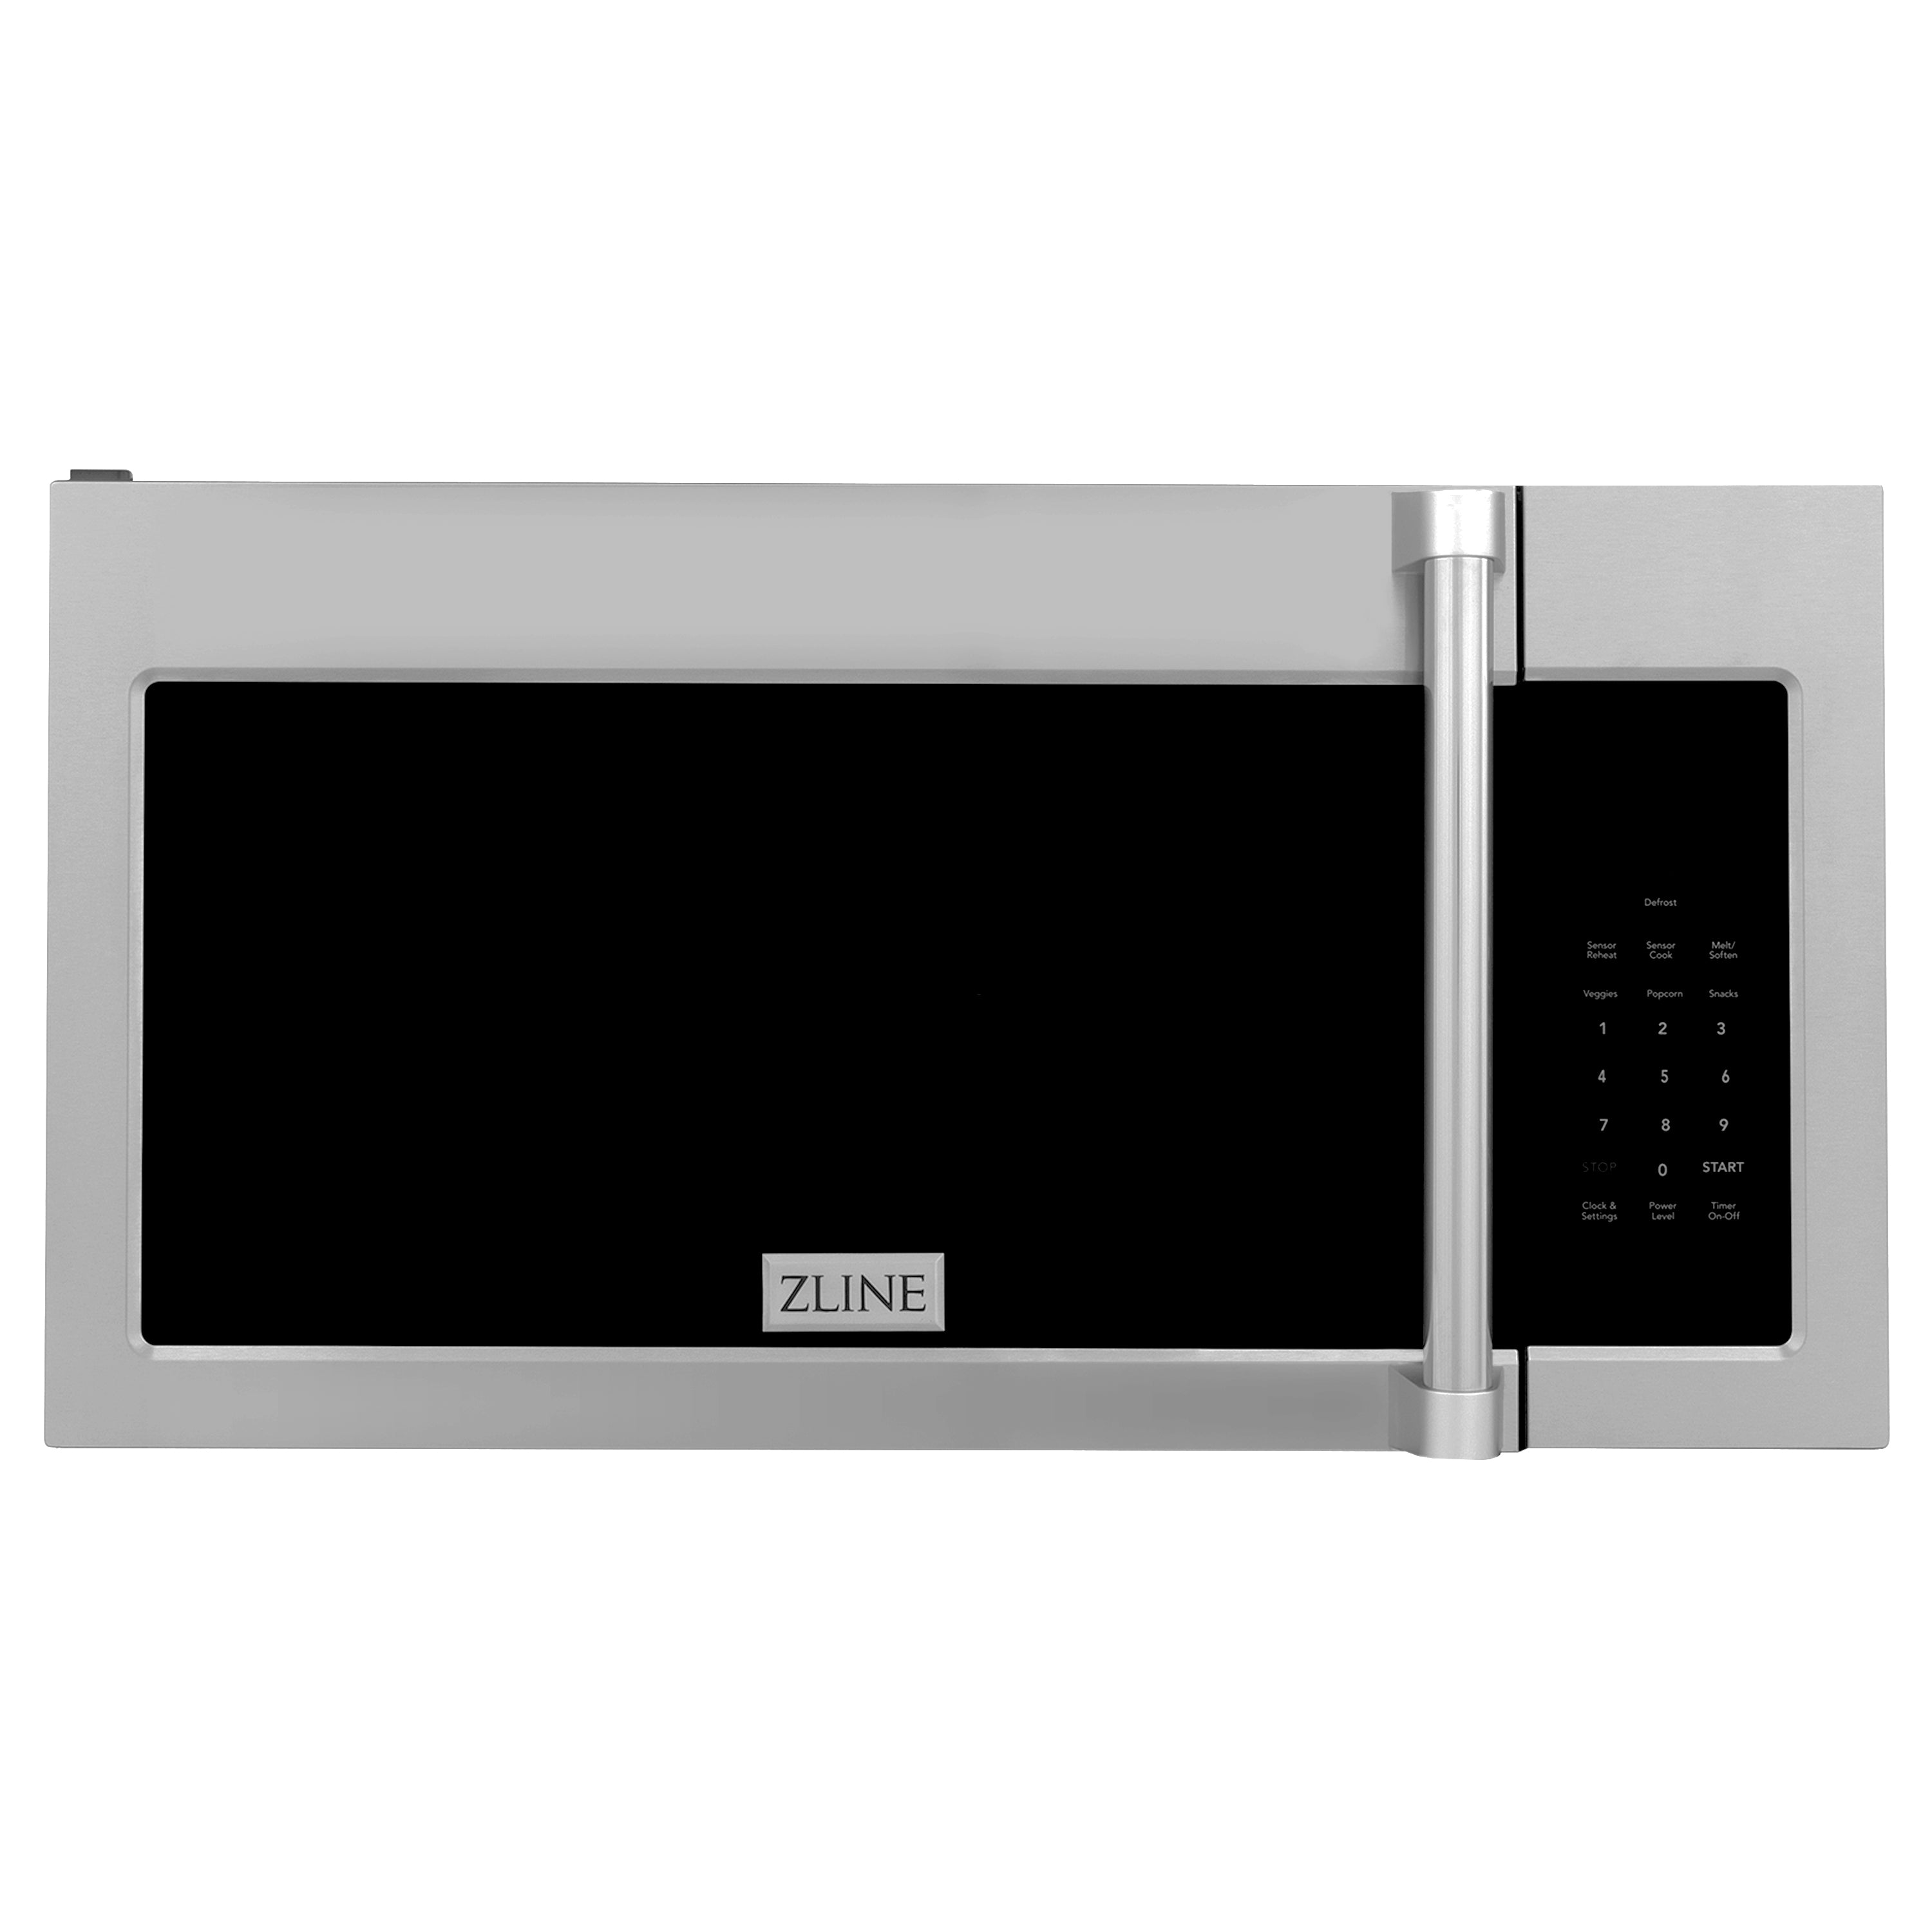 ZLINE Over the Range Convection Microwave Oven in Stainless Steel with Traditional Handle and Sensor Cooking MWO-OTR-H